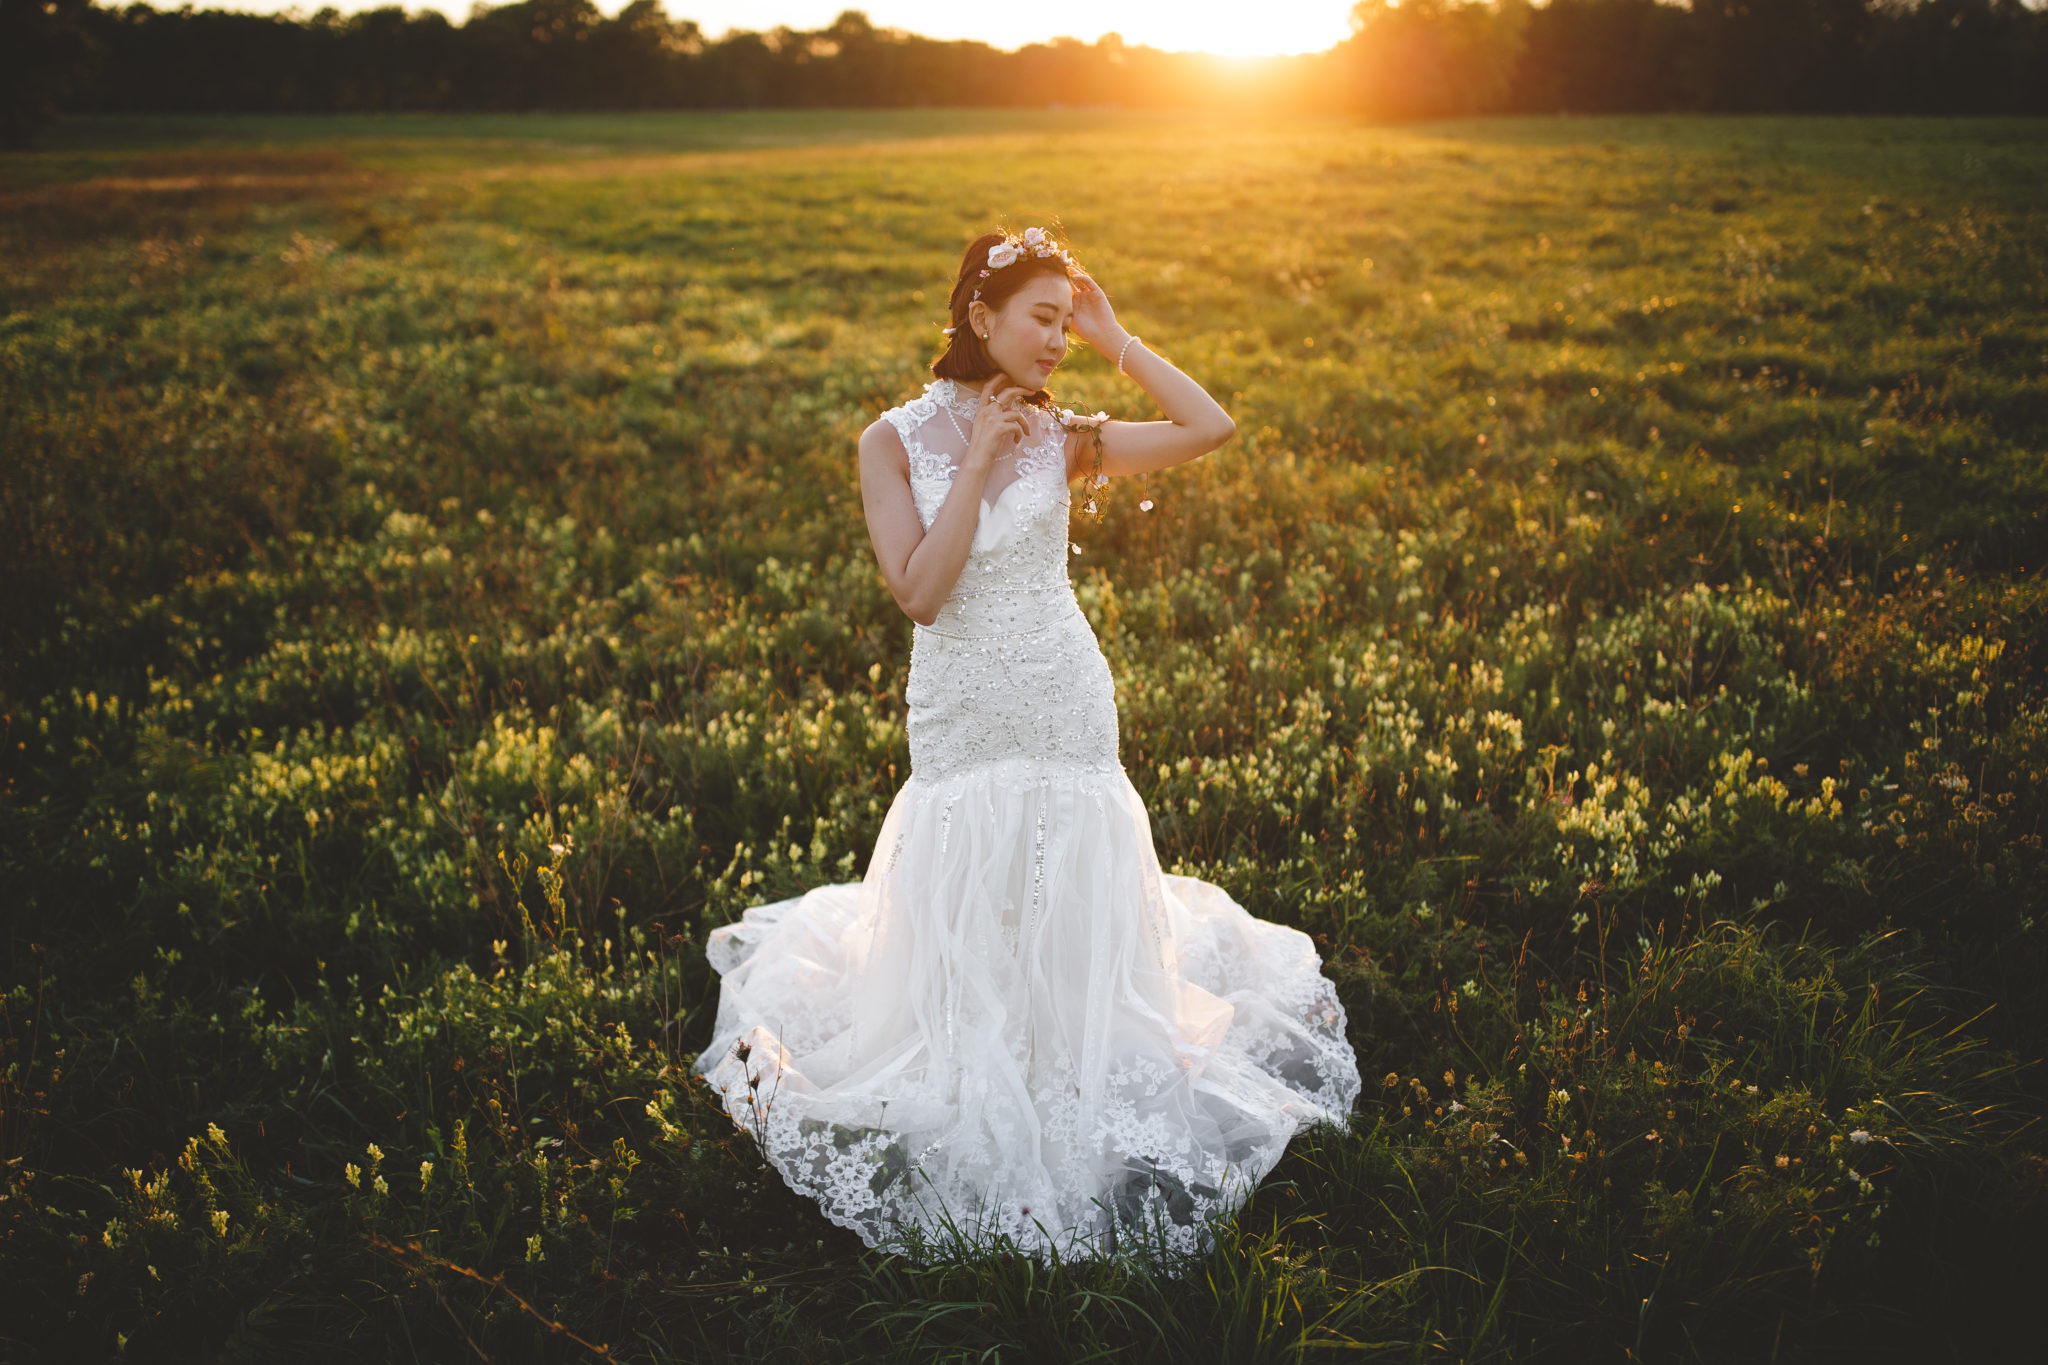 bride-wedding-gown-field-sunset-flare-niagara